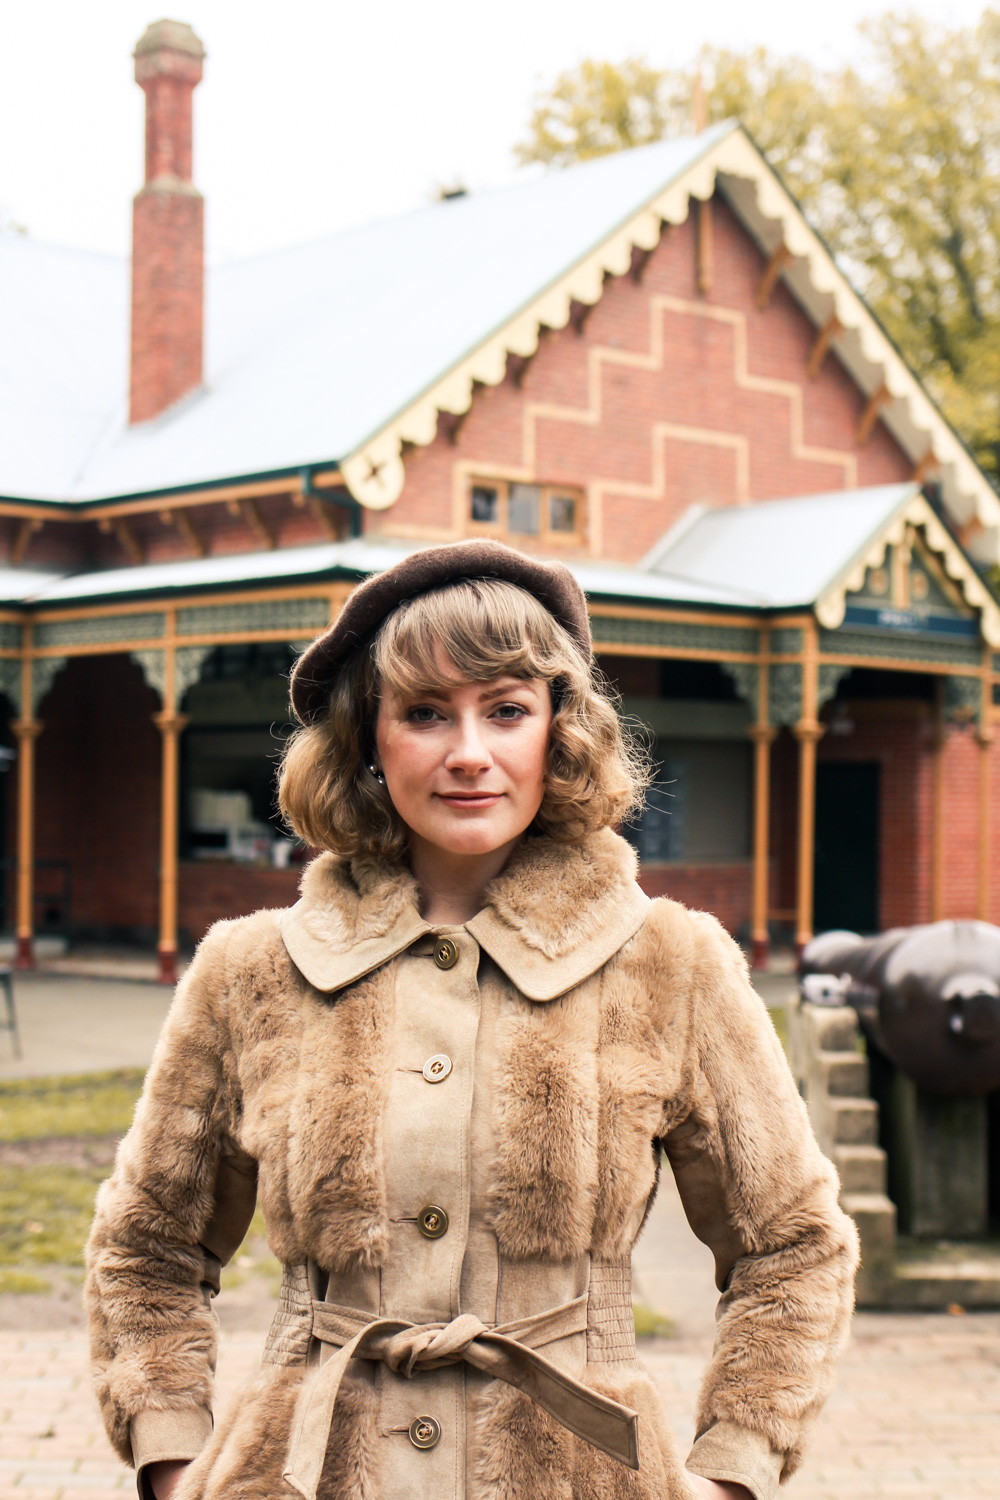 Liana of @findingfemme wearing brown vintage fur style jacket during Autumn in Ballarat